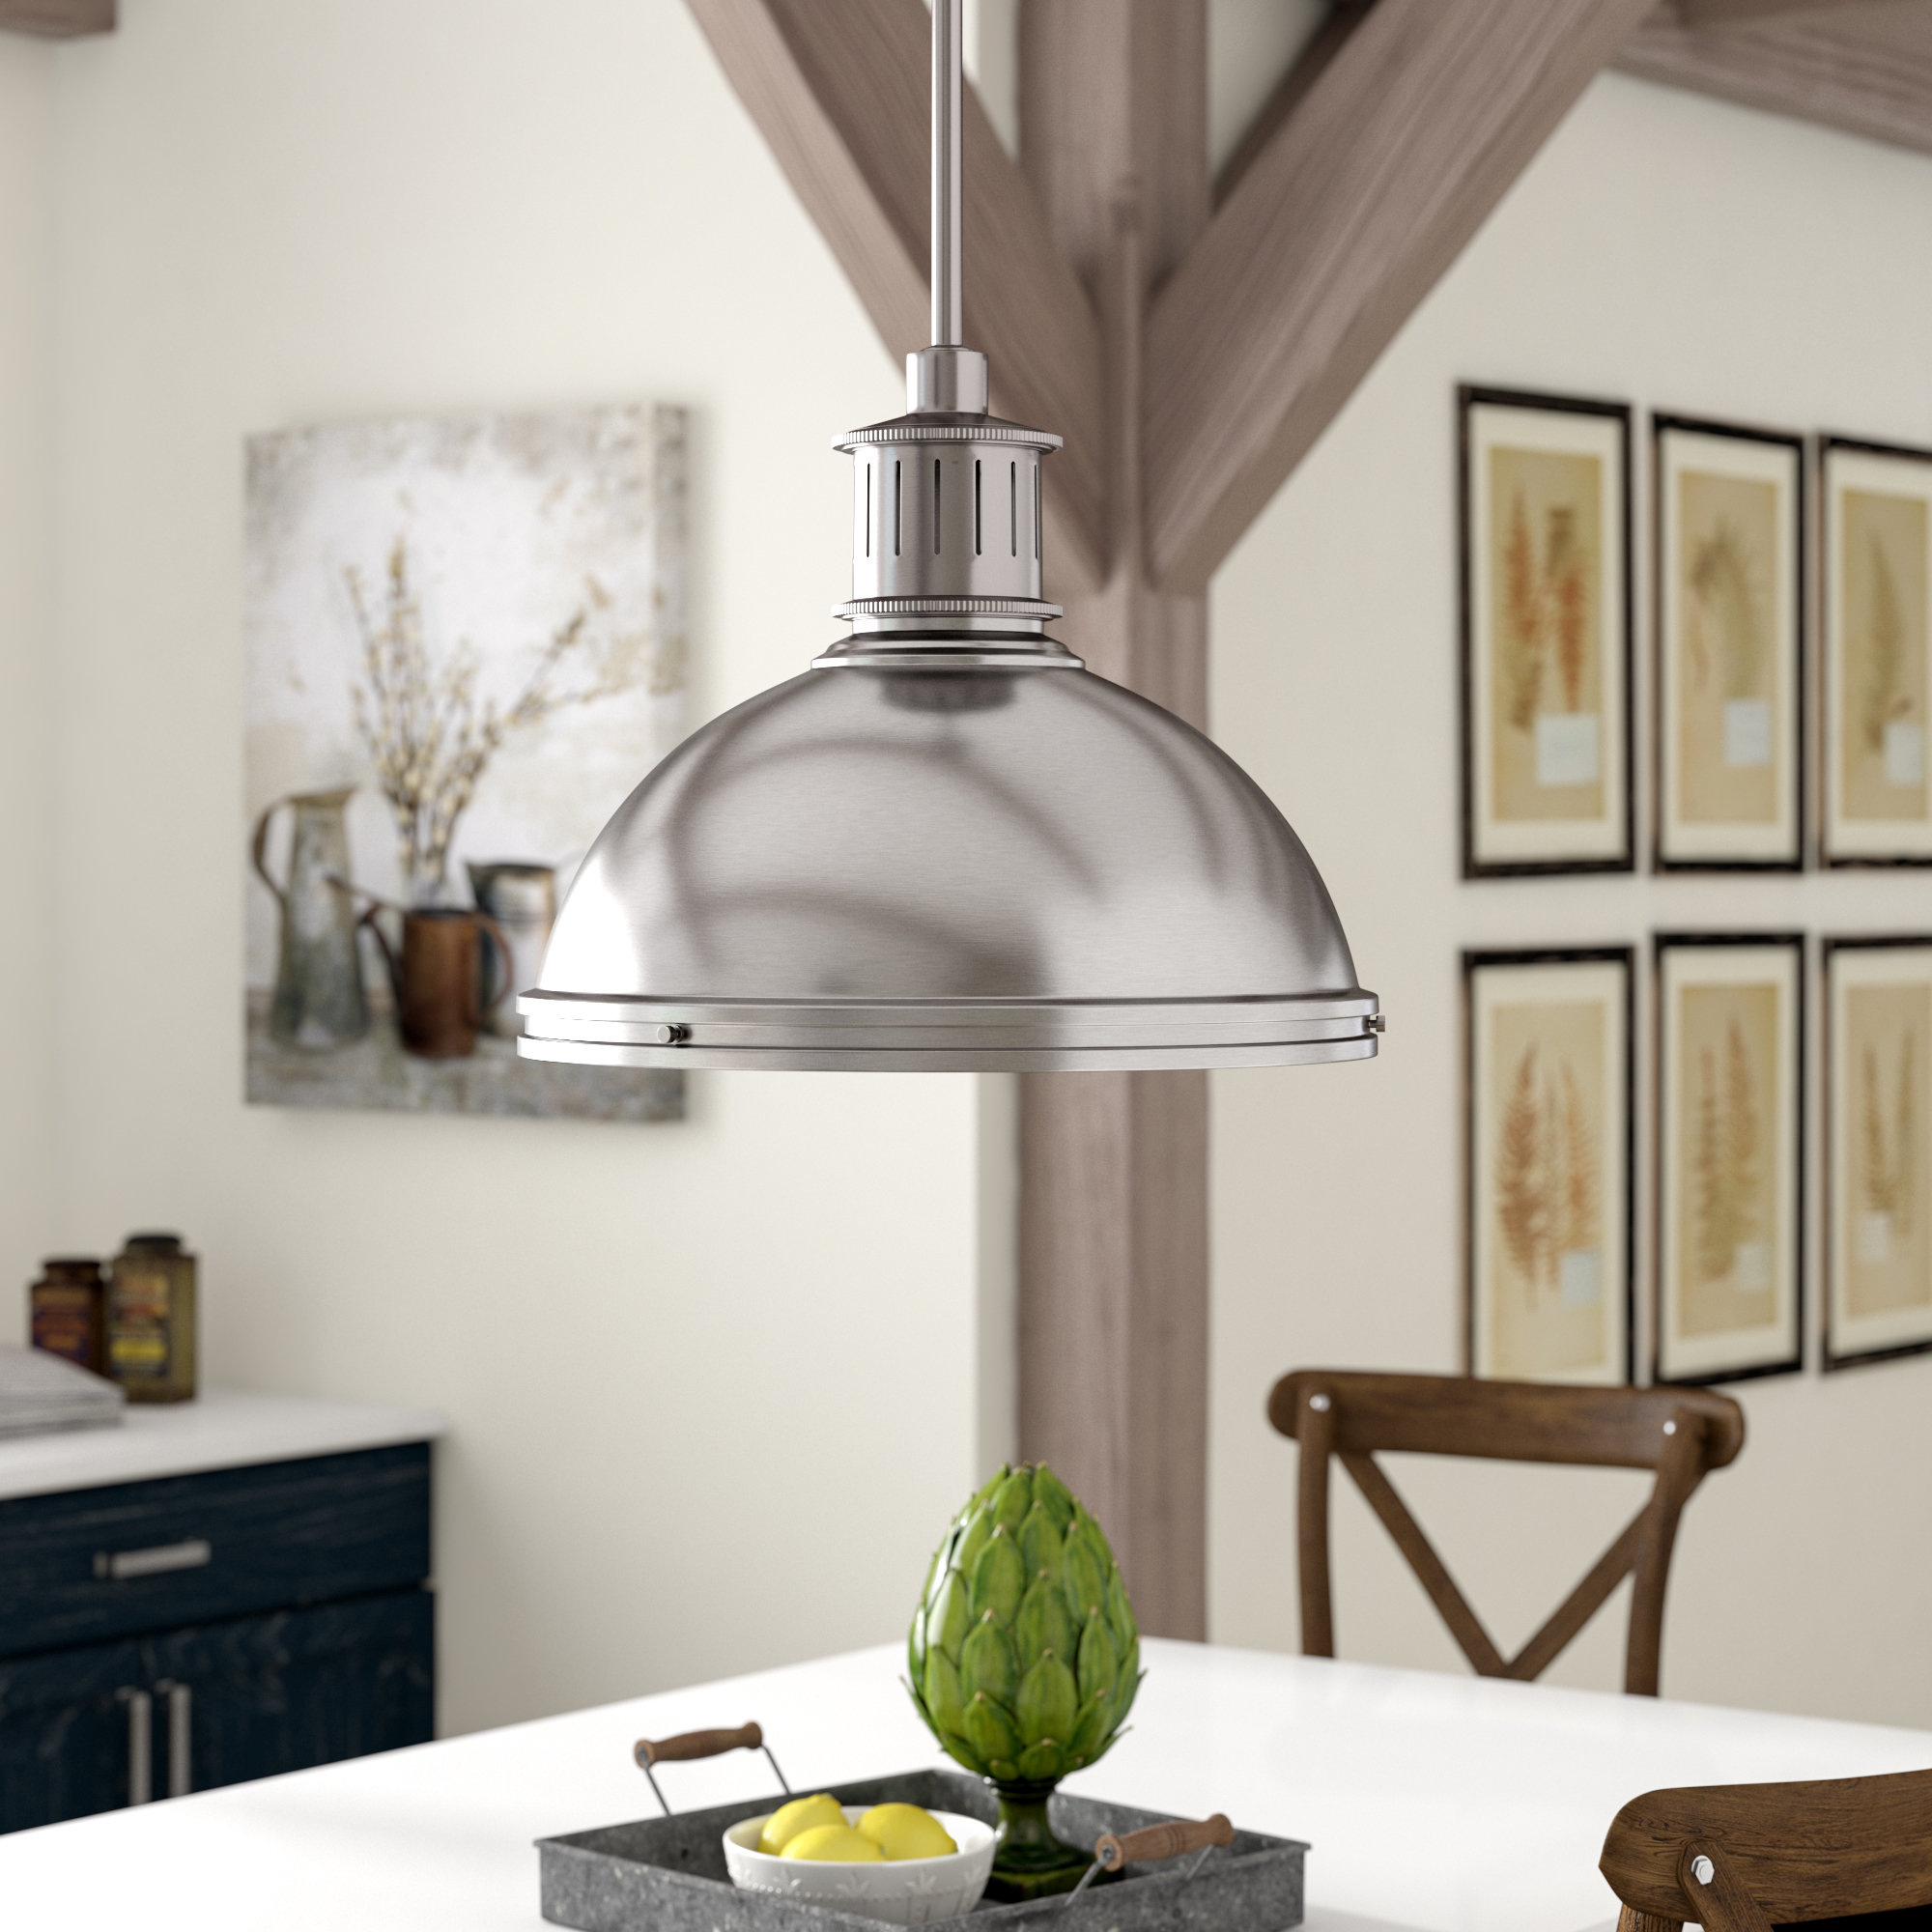 Orchard Hill 1 Light Led Single Dome Pendant Regarding Latest Macon 1 Light Single Dome Pendants (View 15 of 20)